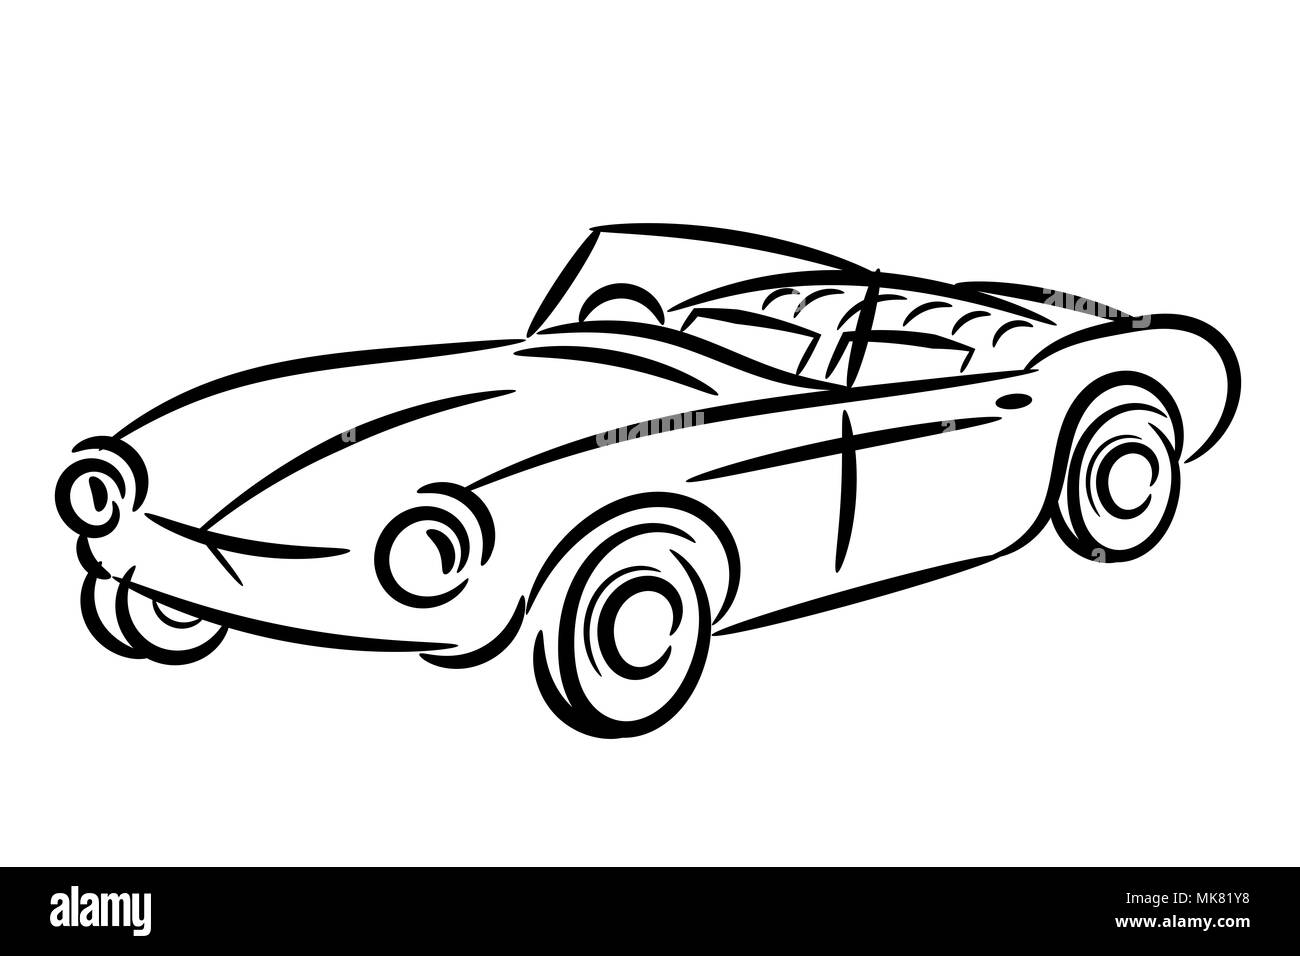 Vintage retro car stylized isolated - Stock Image